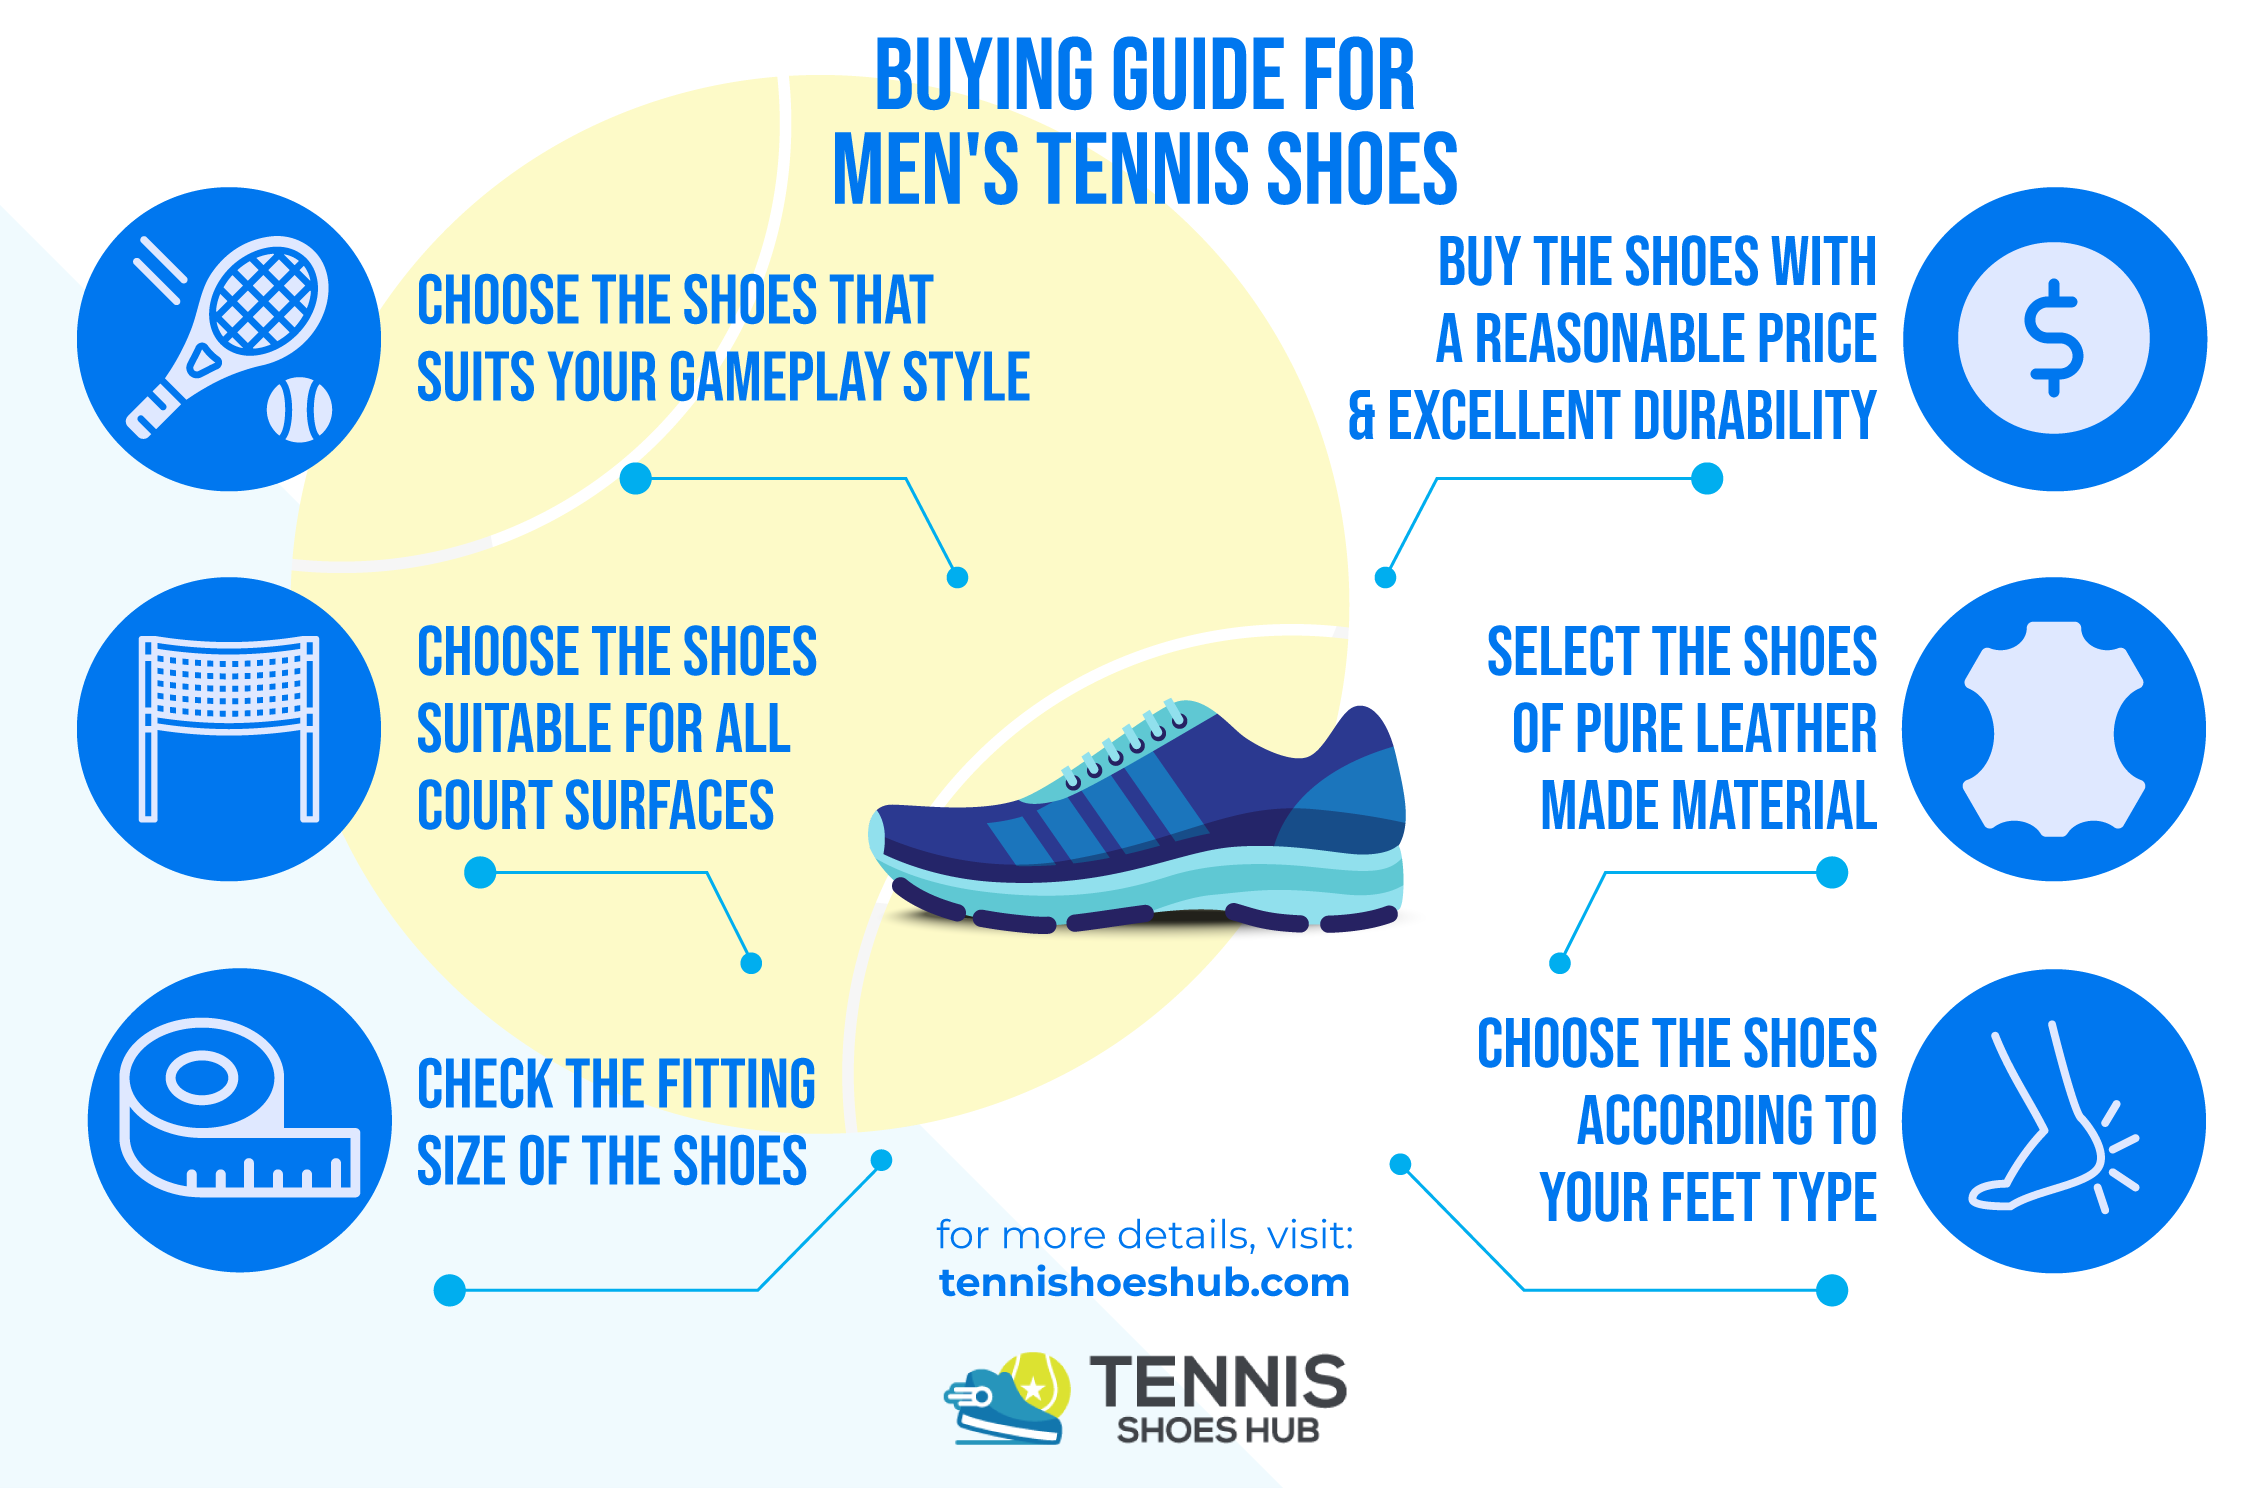 Buying Guide for mens tennis shoes